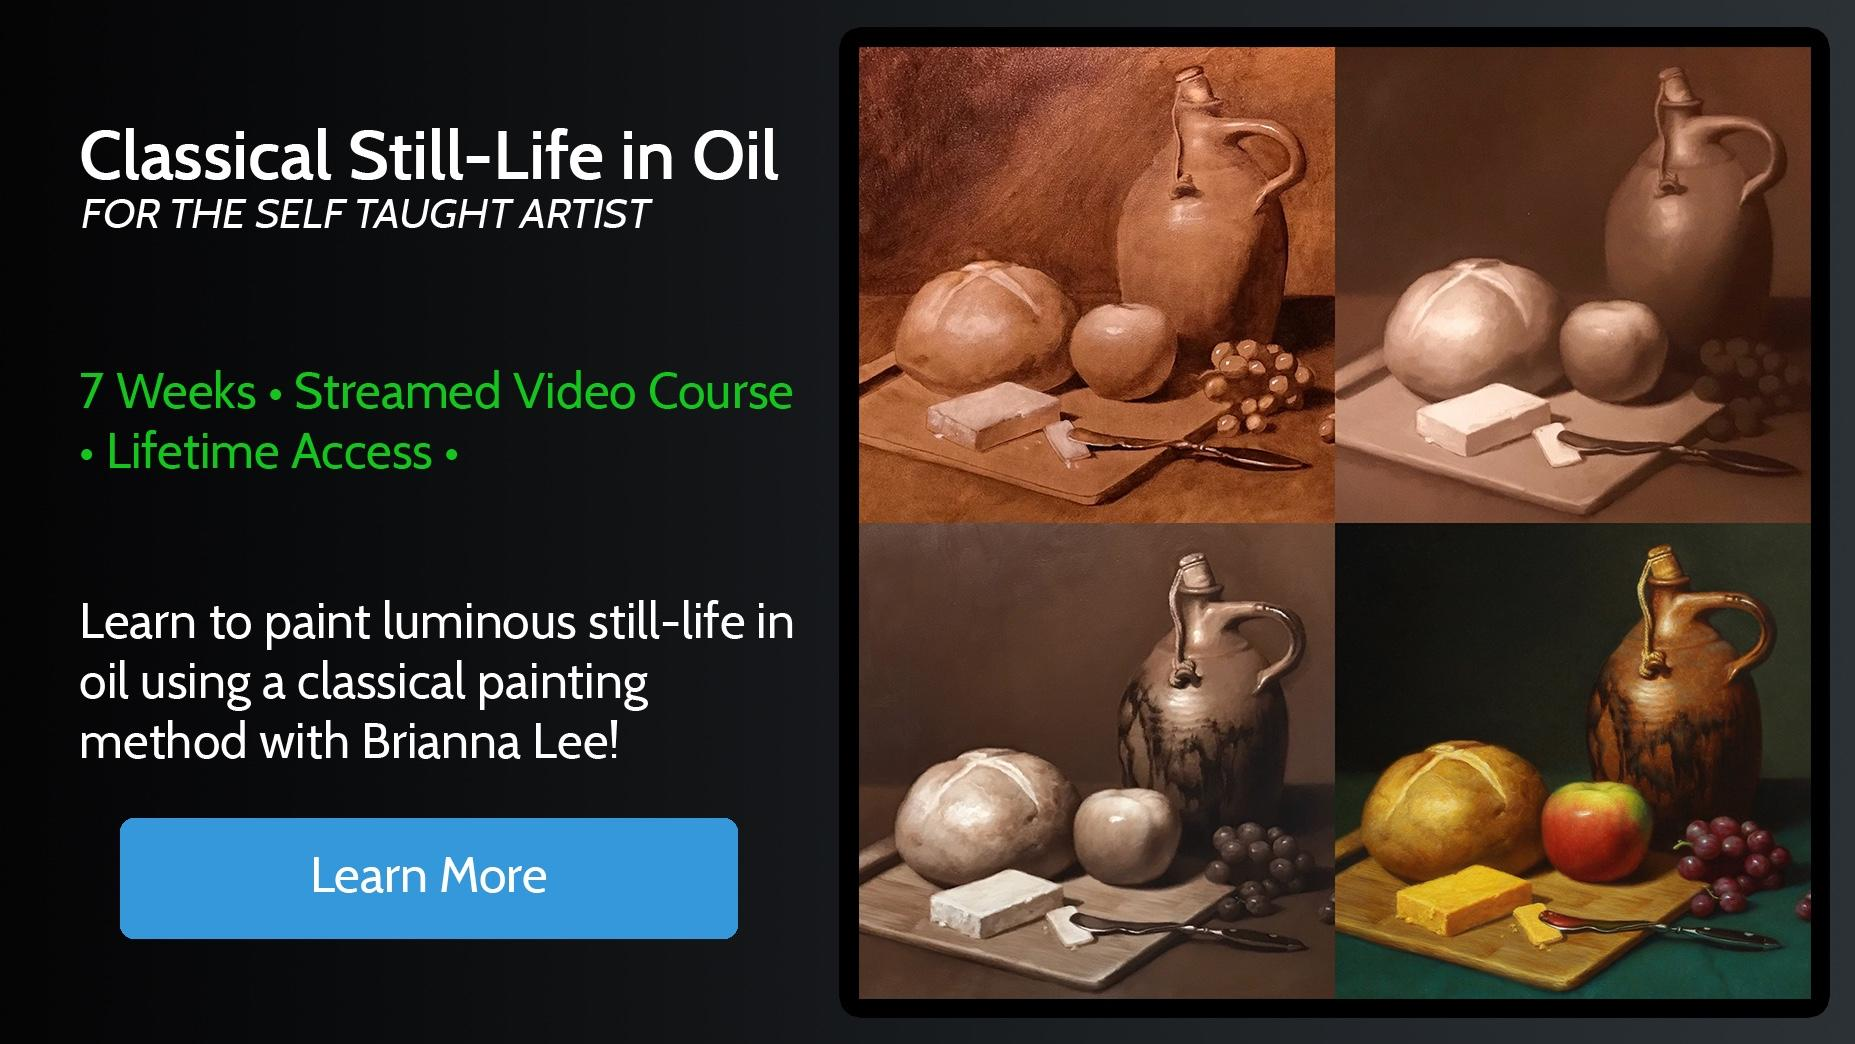 Classical Still-Life in Oil Online Course